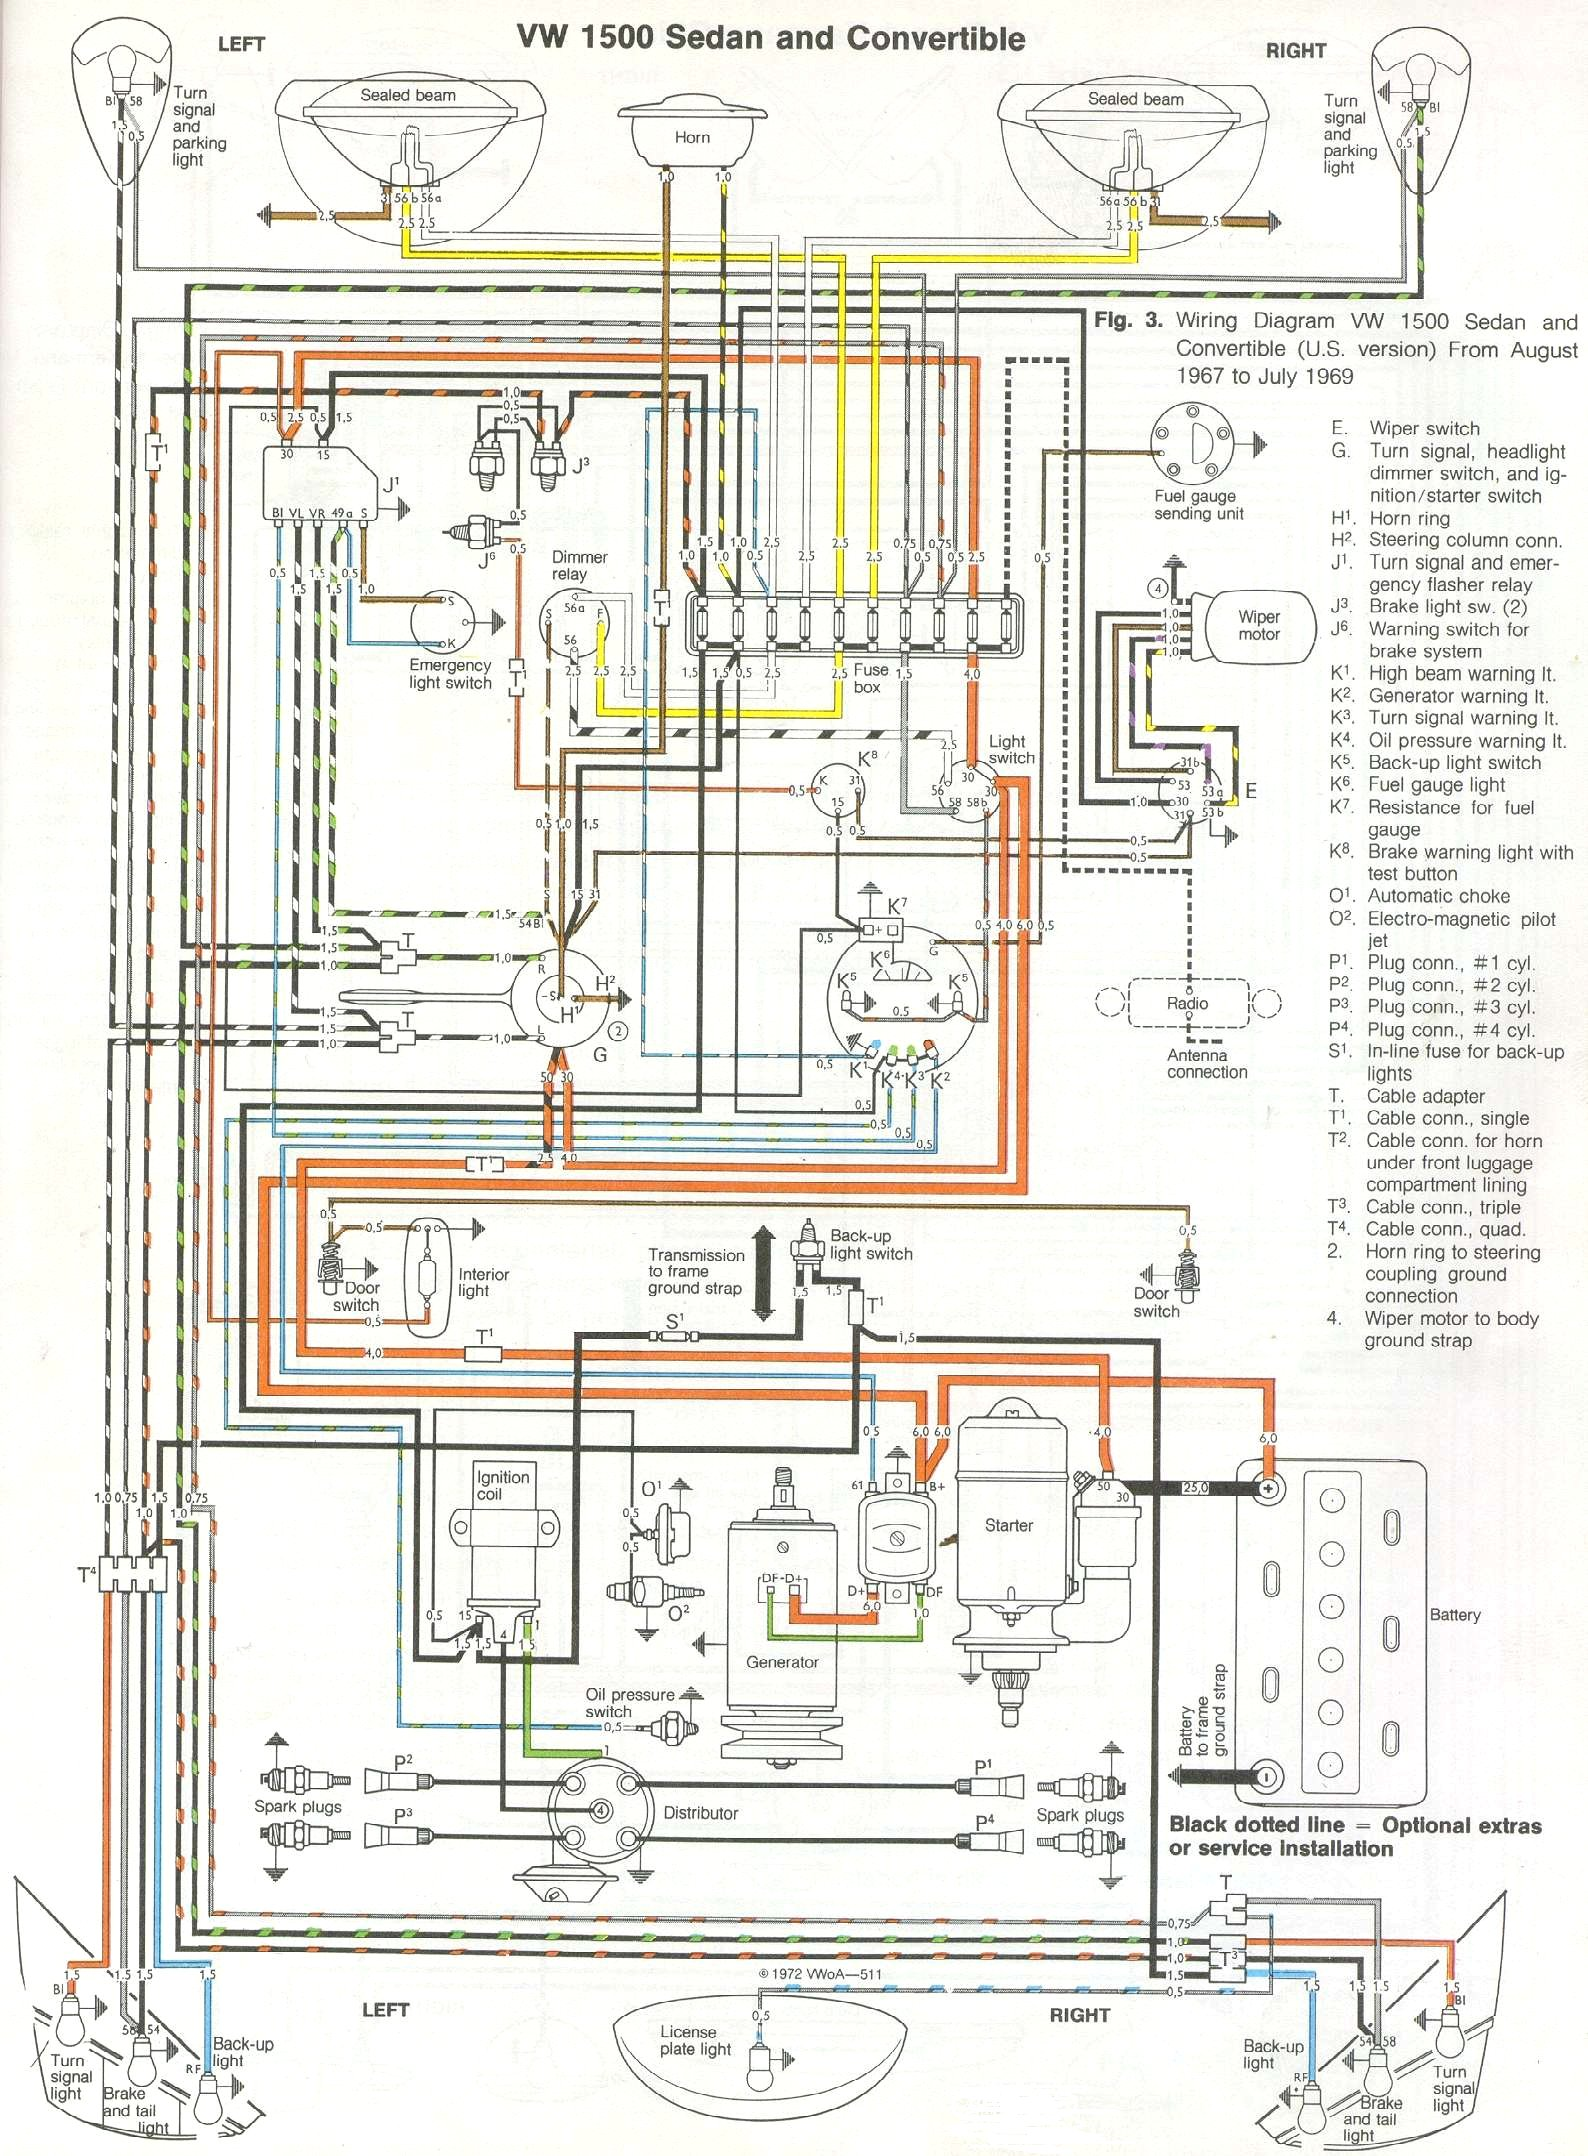 1969 71 beetle wiring diagram thegoldenbug com rh thegoldenbug com vw beetle wiring harness routing vw beetle wiring loom uk